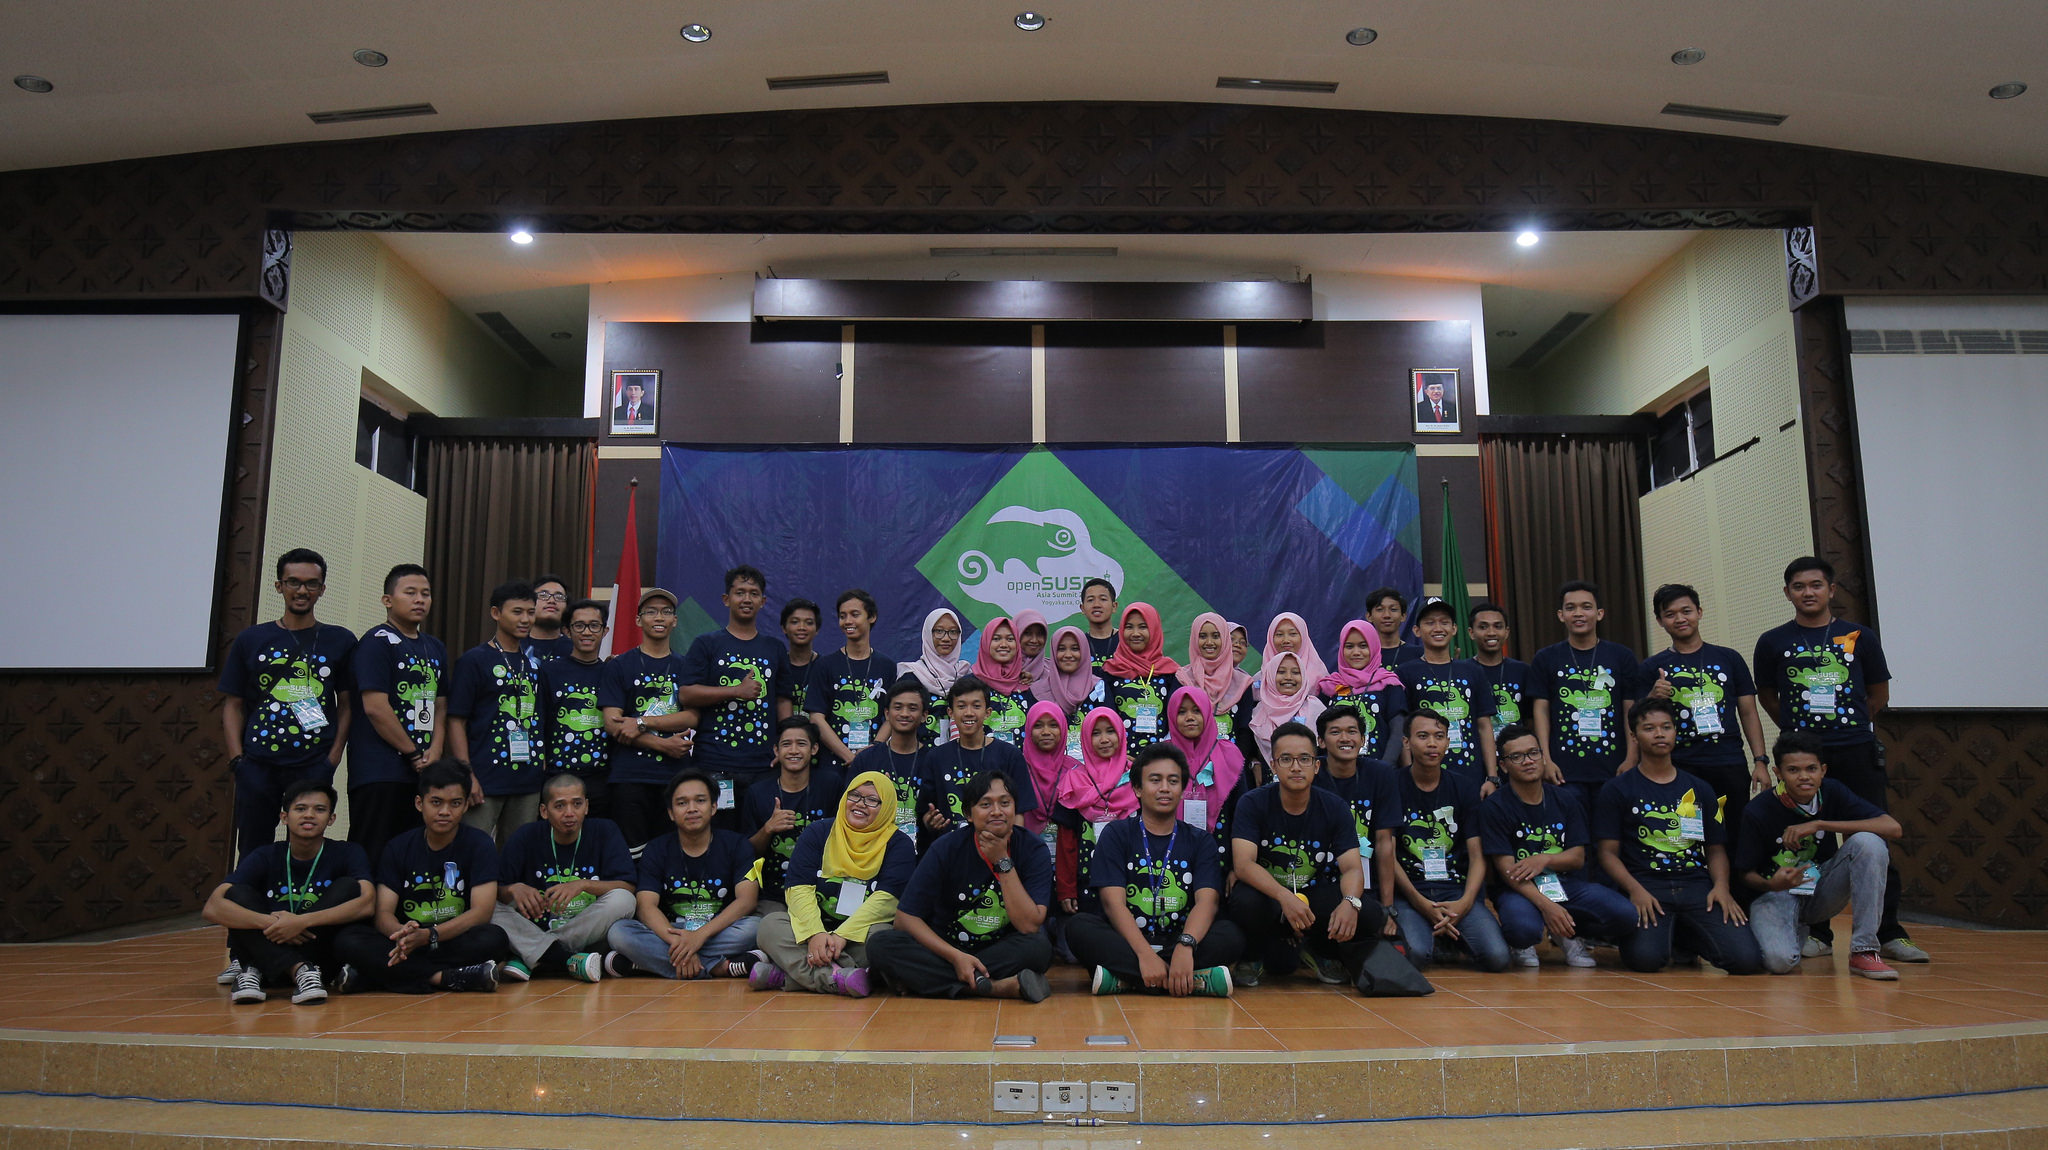 Full Team - Photo by openSUSE Indonesia